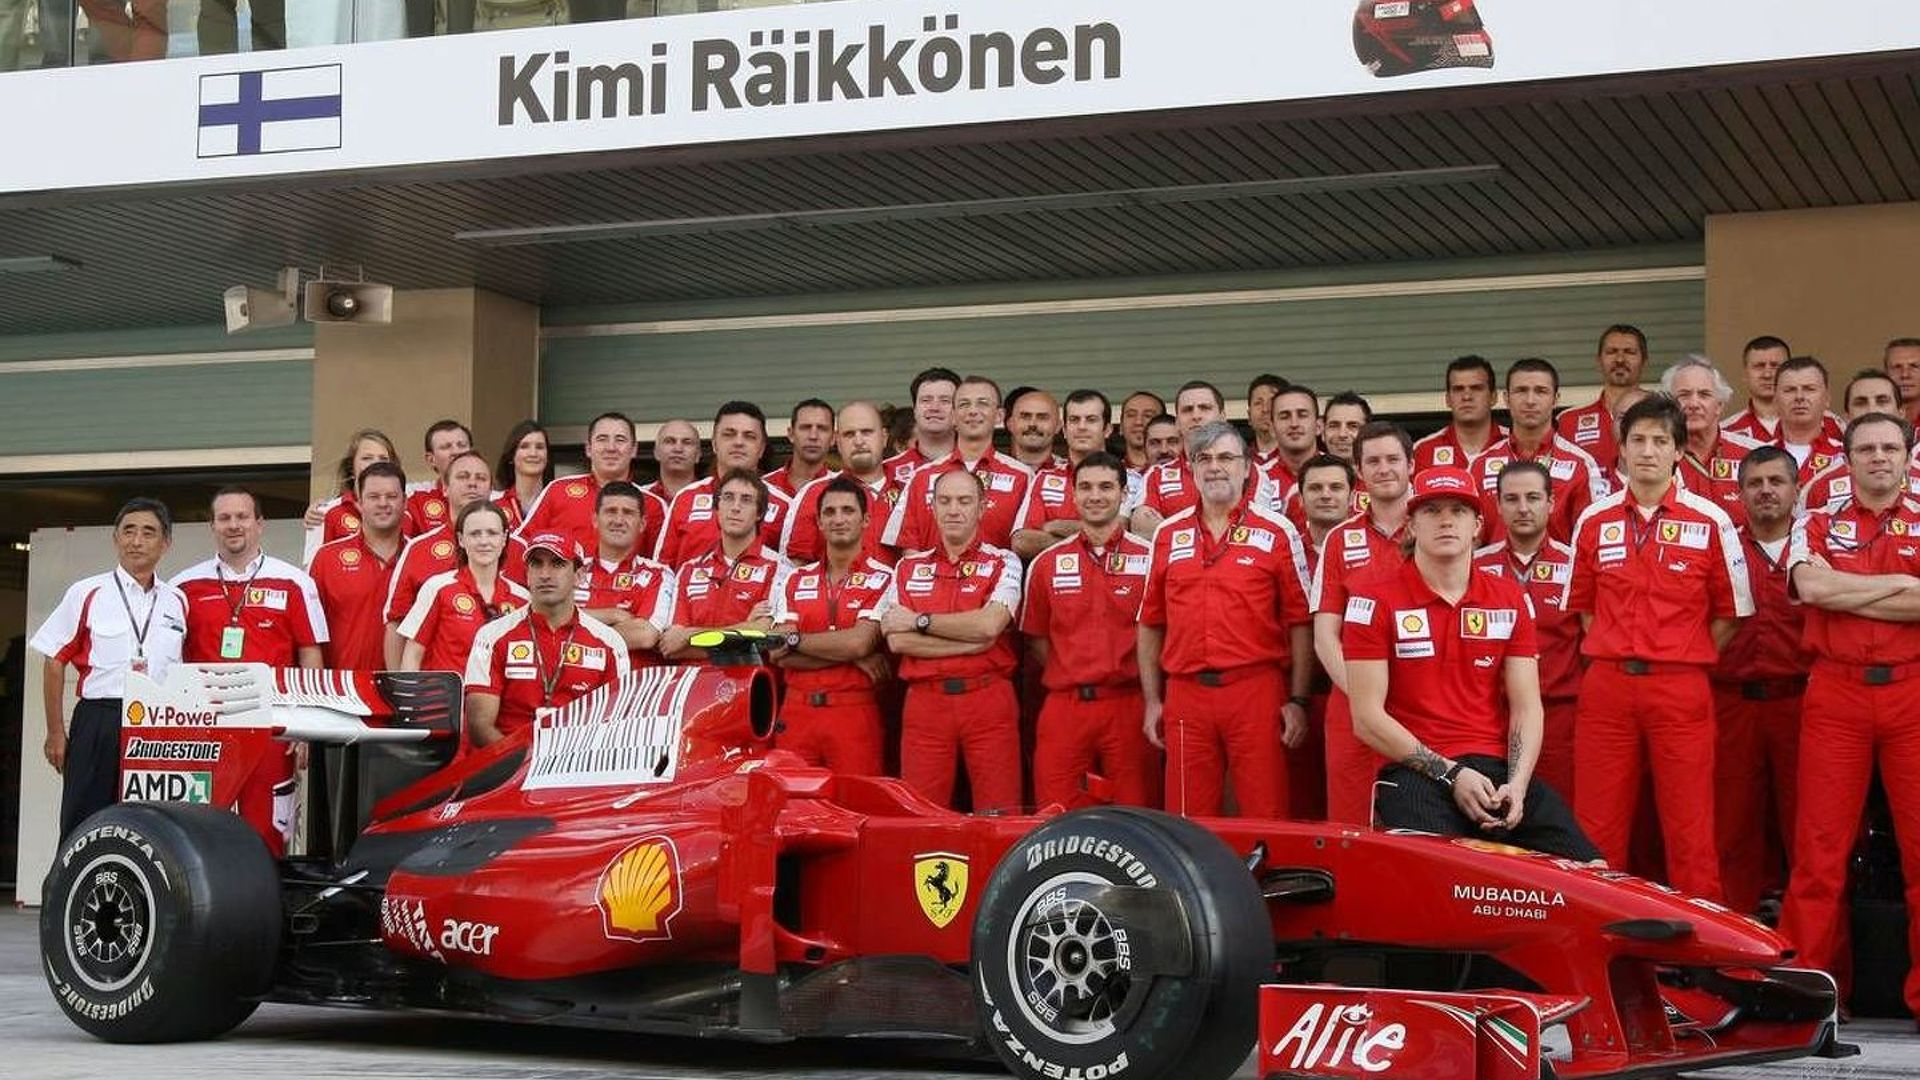 Ferrari could not evolve 2009 car - Domenicali